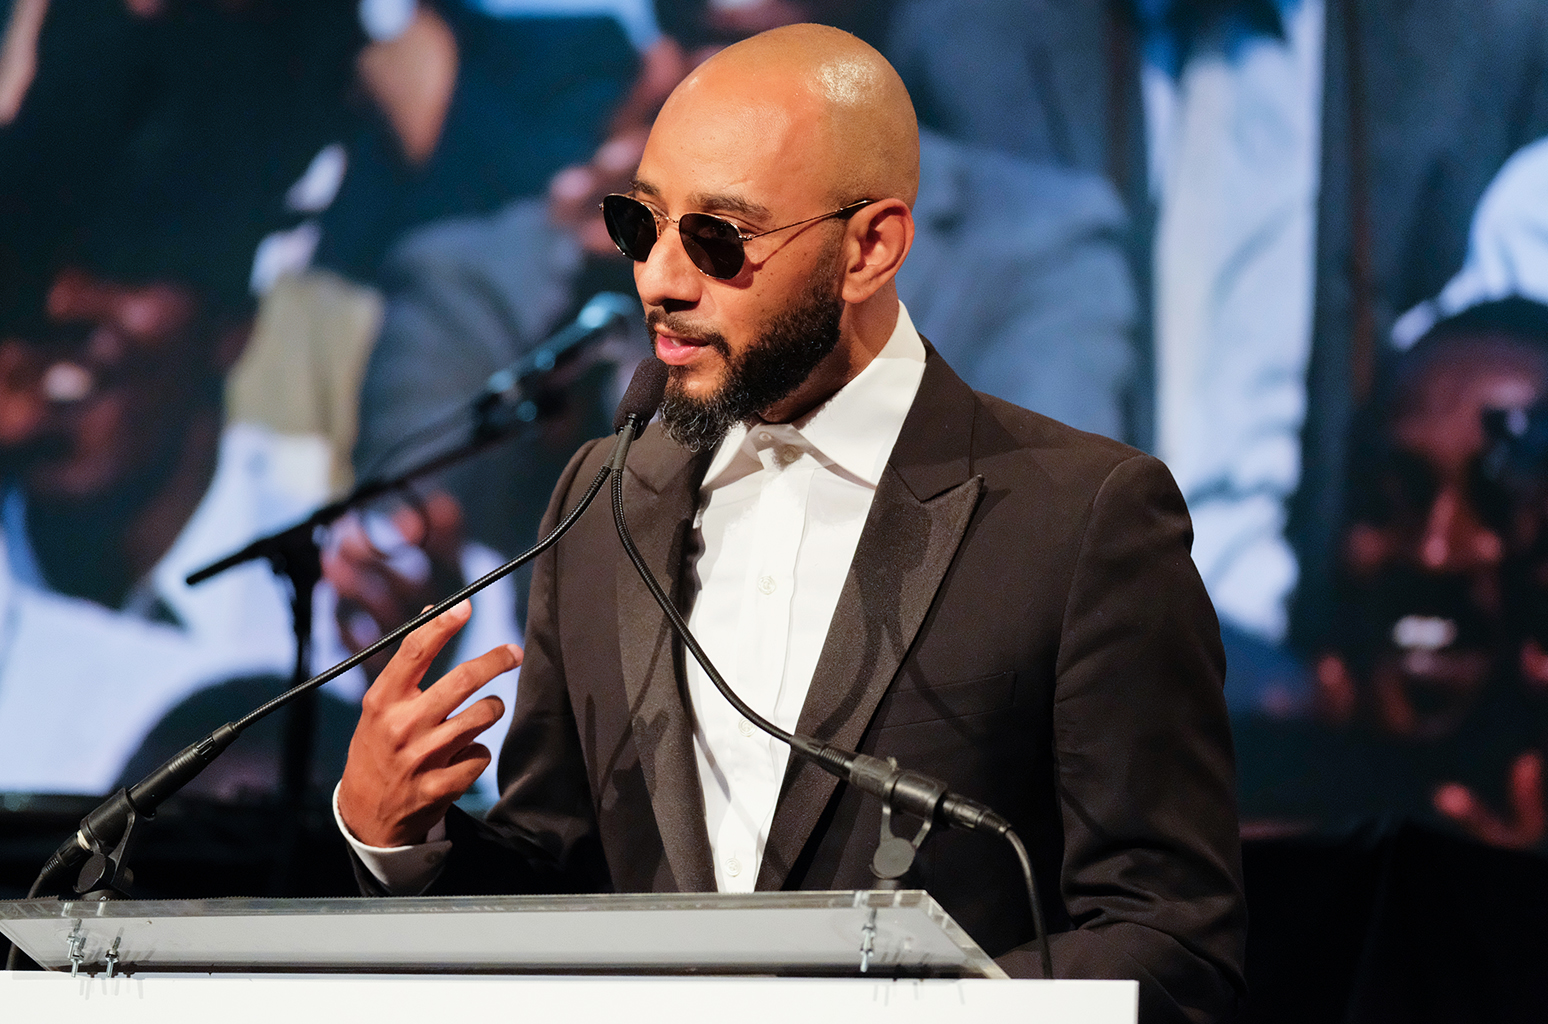 Photo of SWIZZ BEATZ GRADUATES FROM HARVARD BUSINESS SCHOOL.